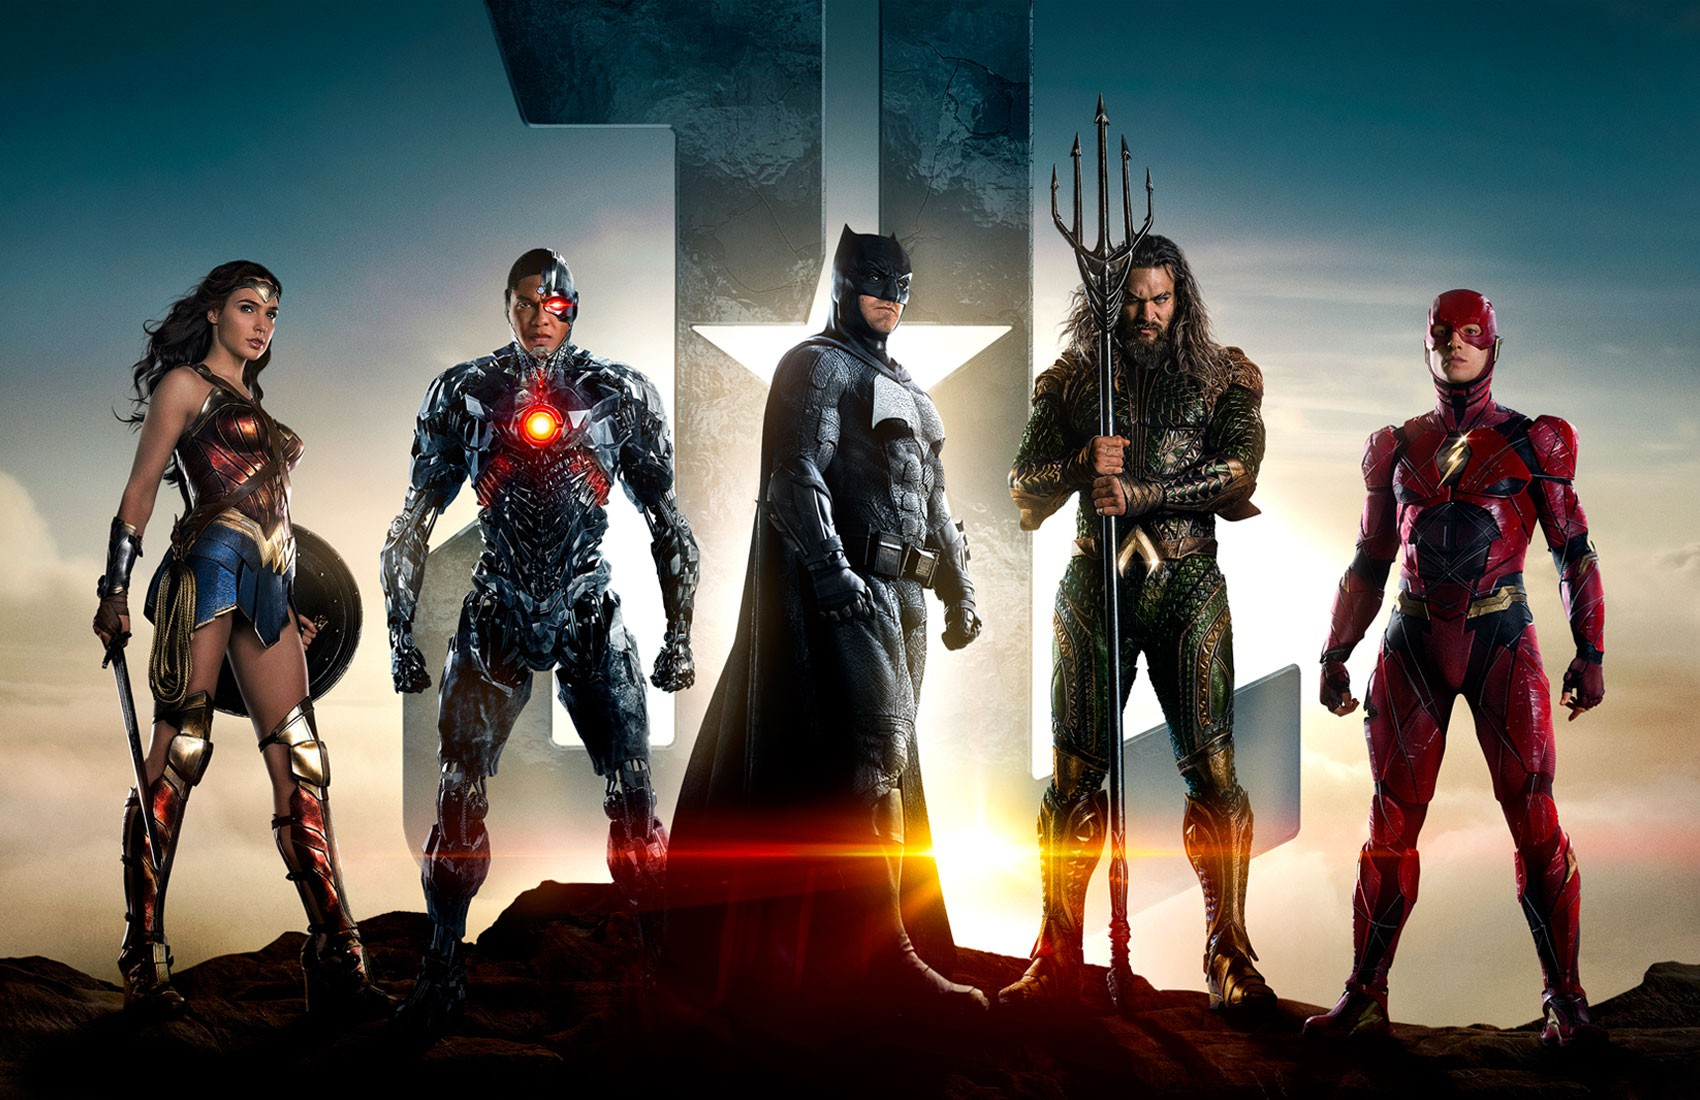 justice-league-review-1511085474417.jpg